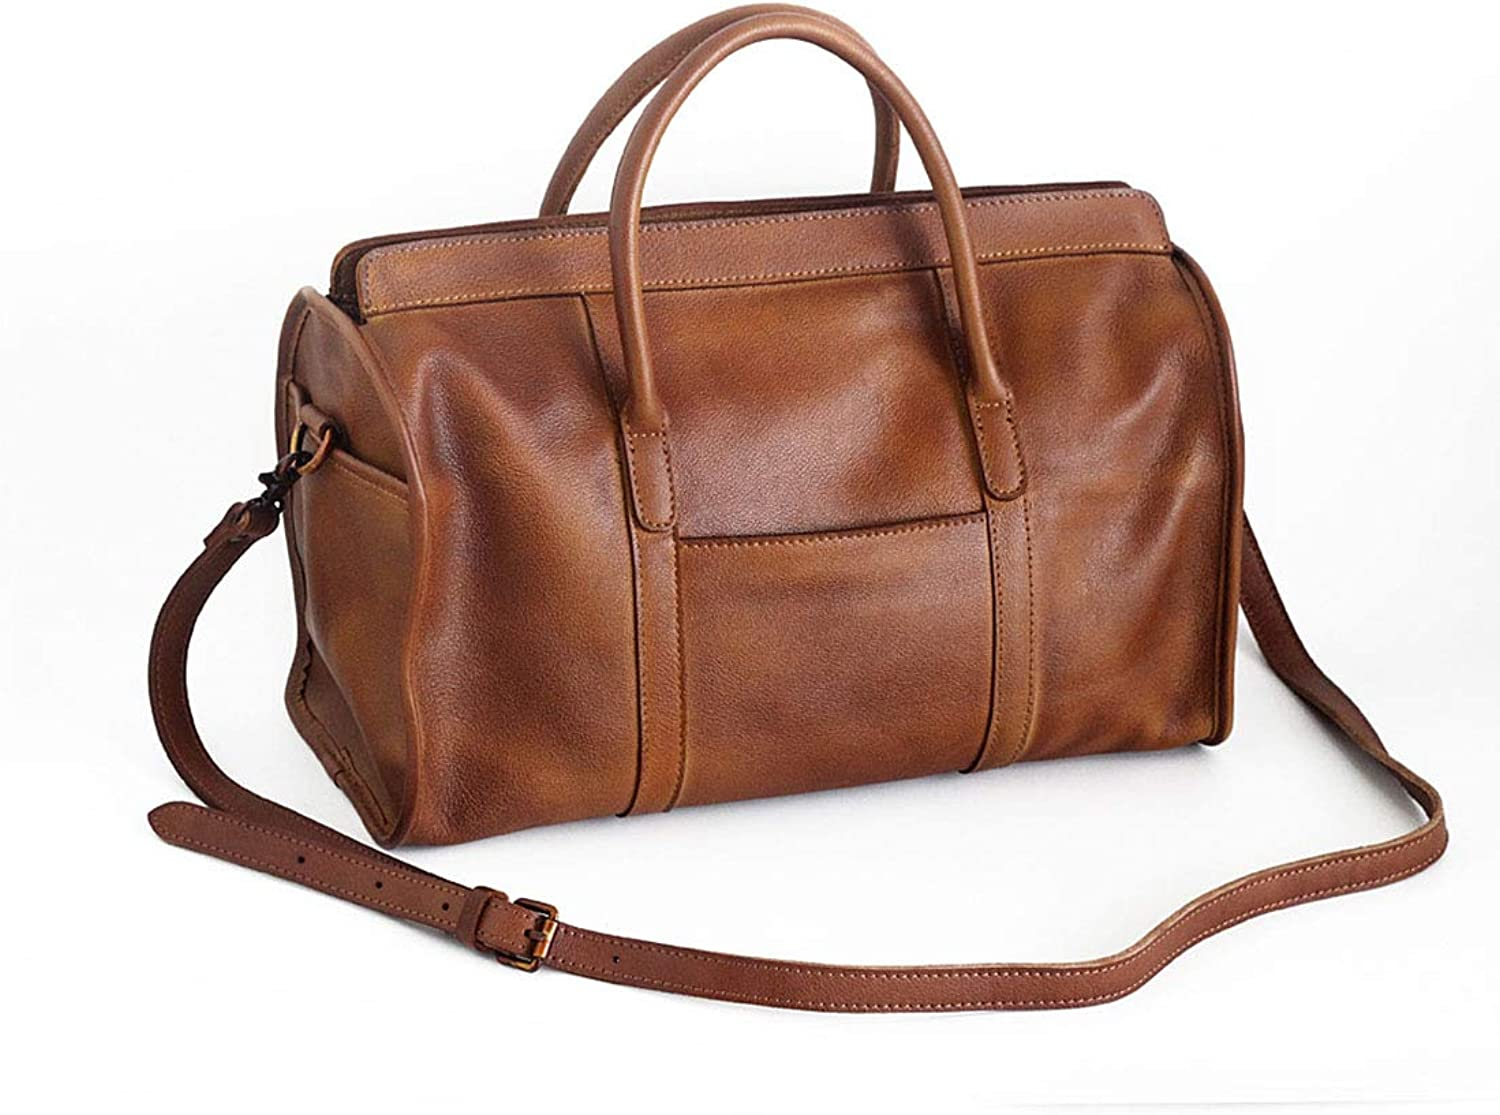 1706f552b The First Layer of Leather Handbags HandRubbed Shoulder Messenger ...